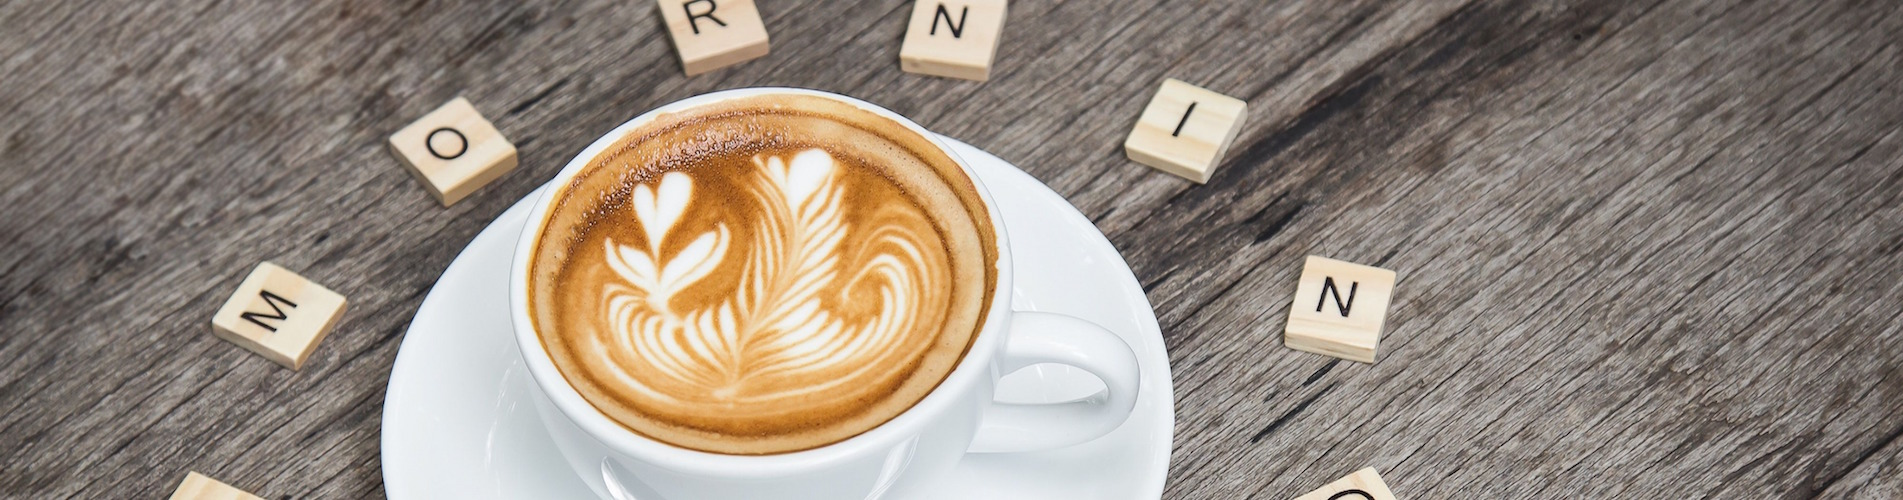 How to Develop a Heart-Healthy Morning Routine